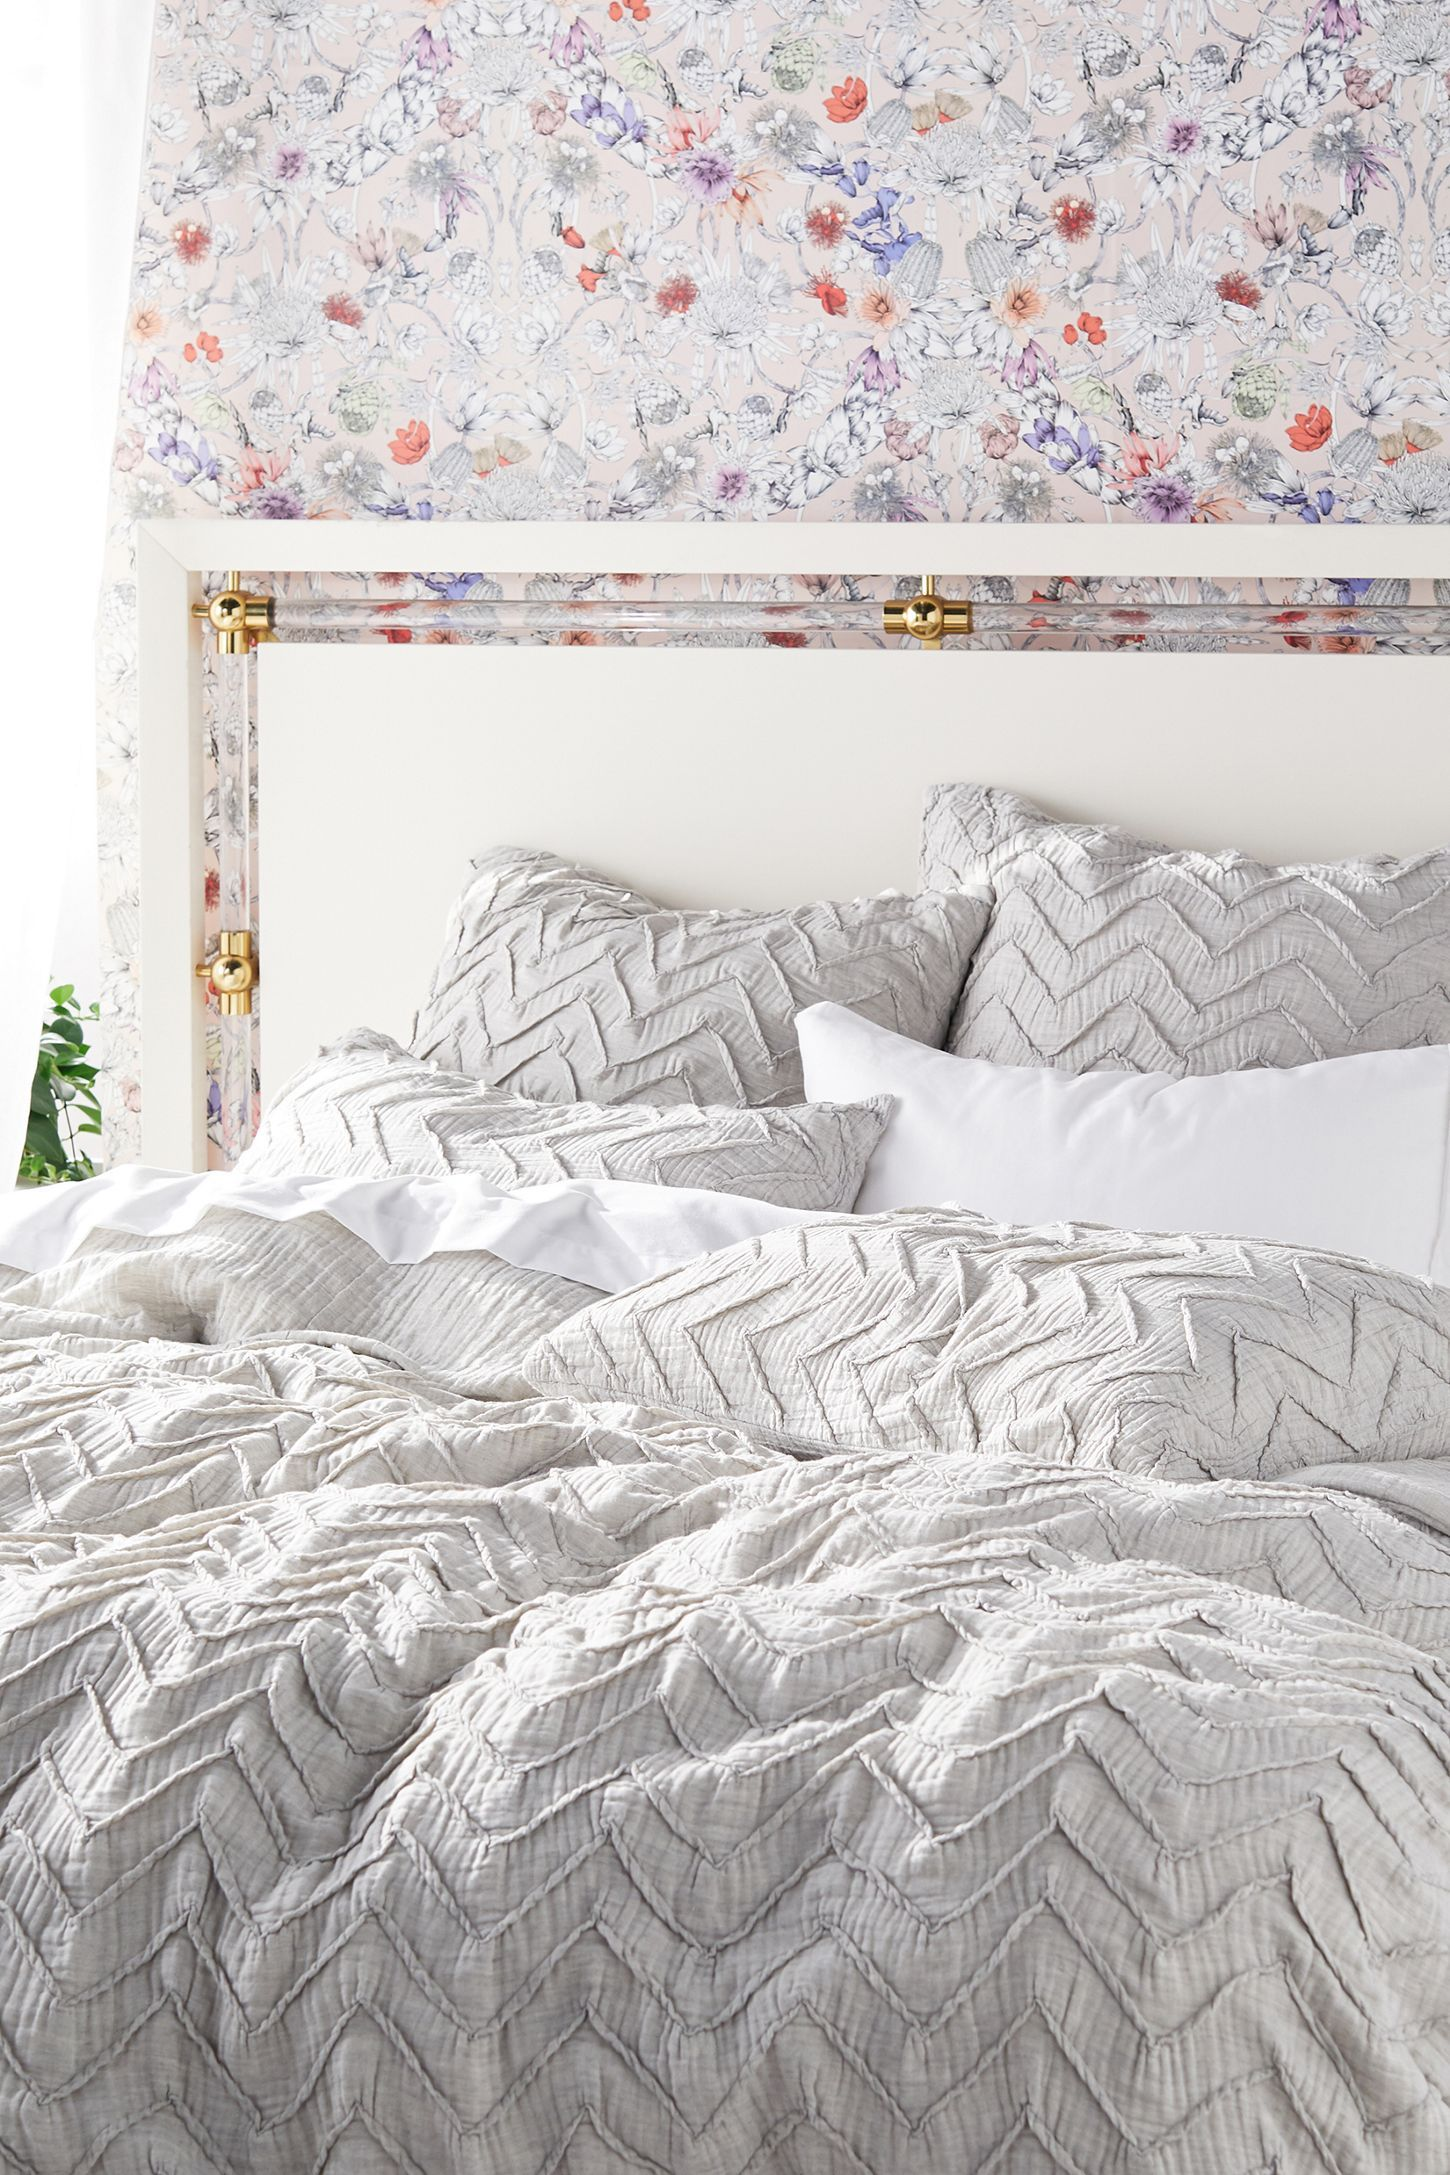 Textured Chevron Duvet Cover With Images Duvet Cover Master